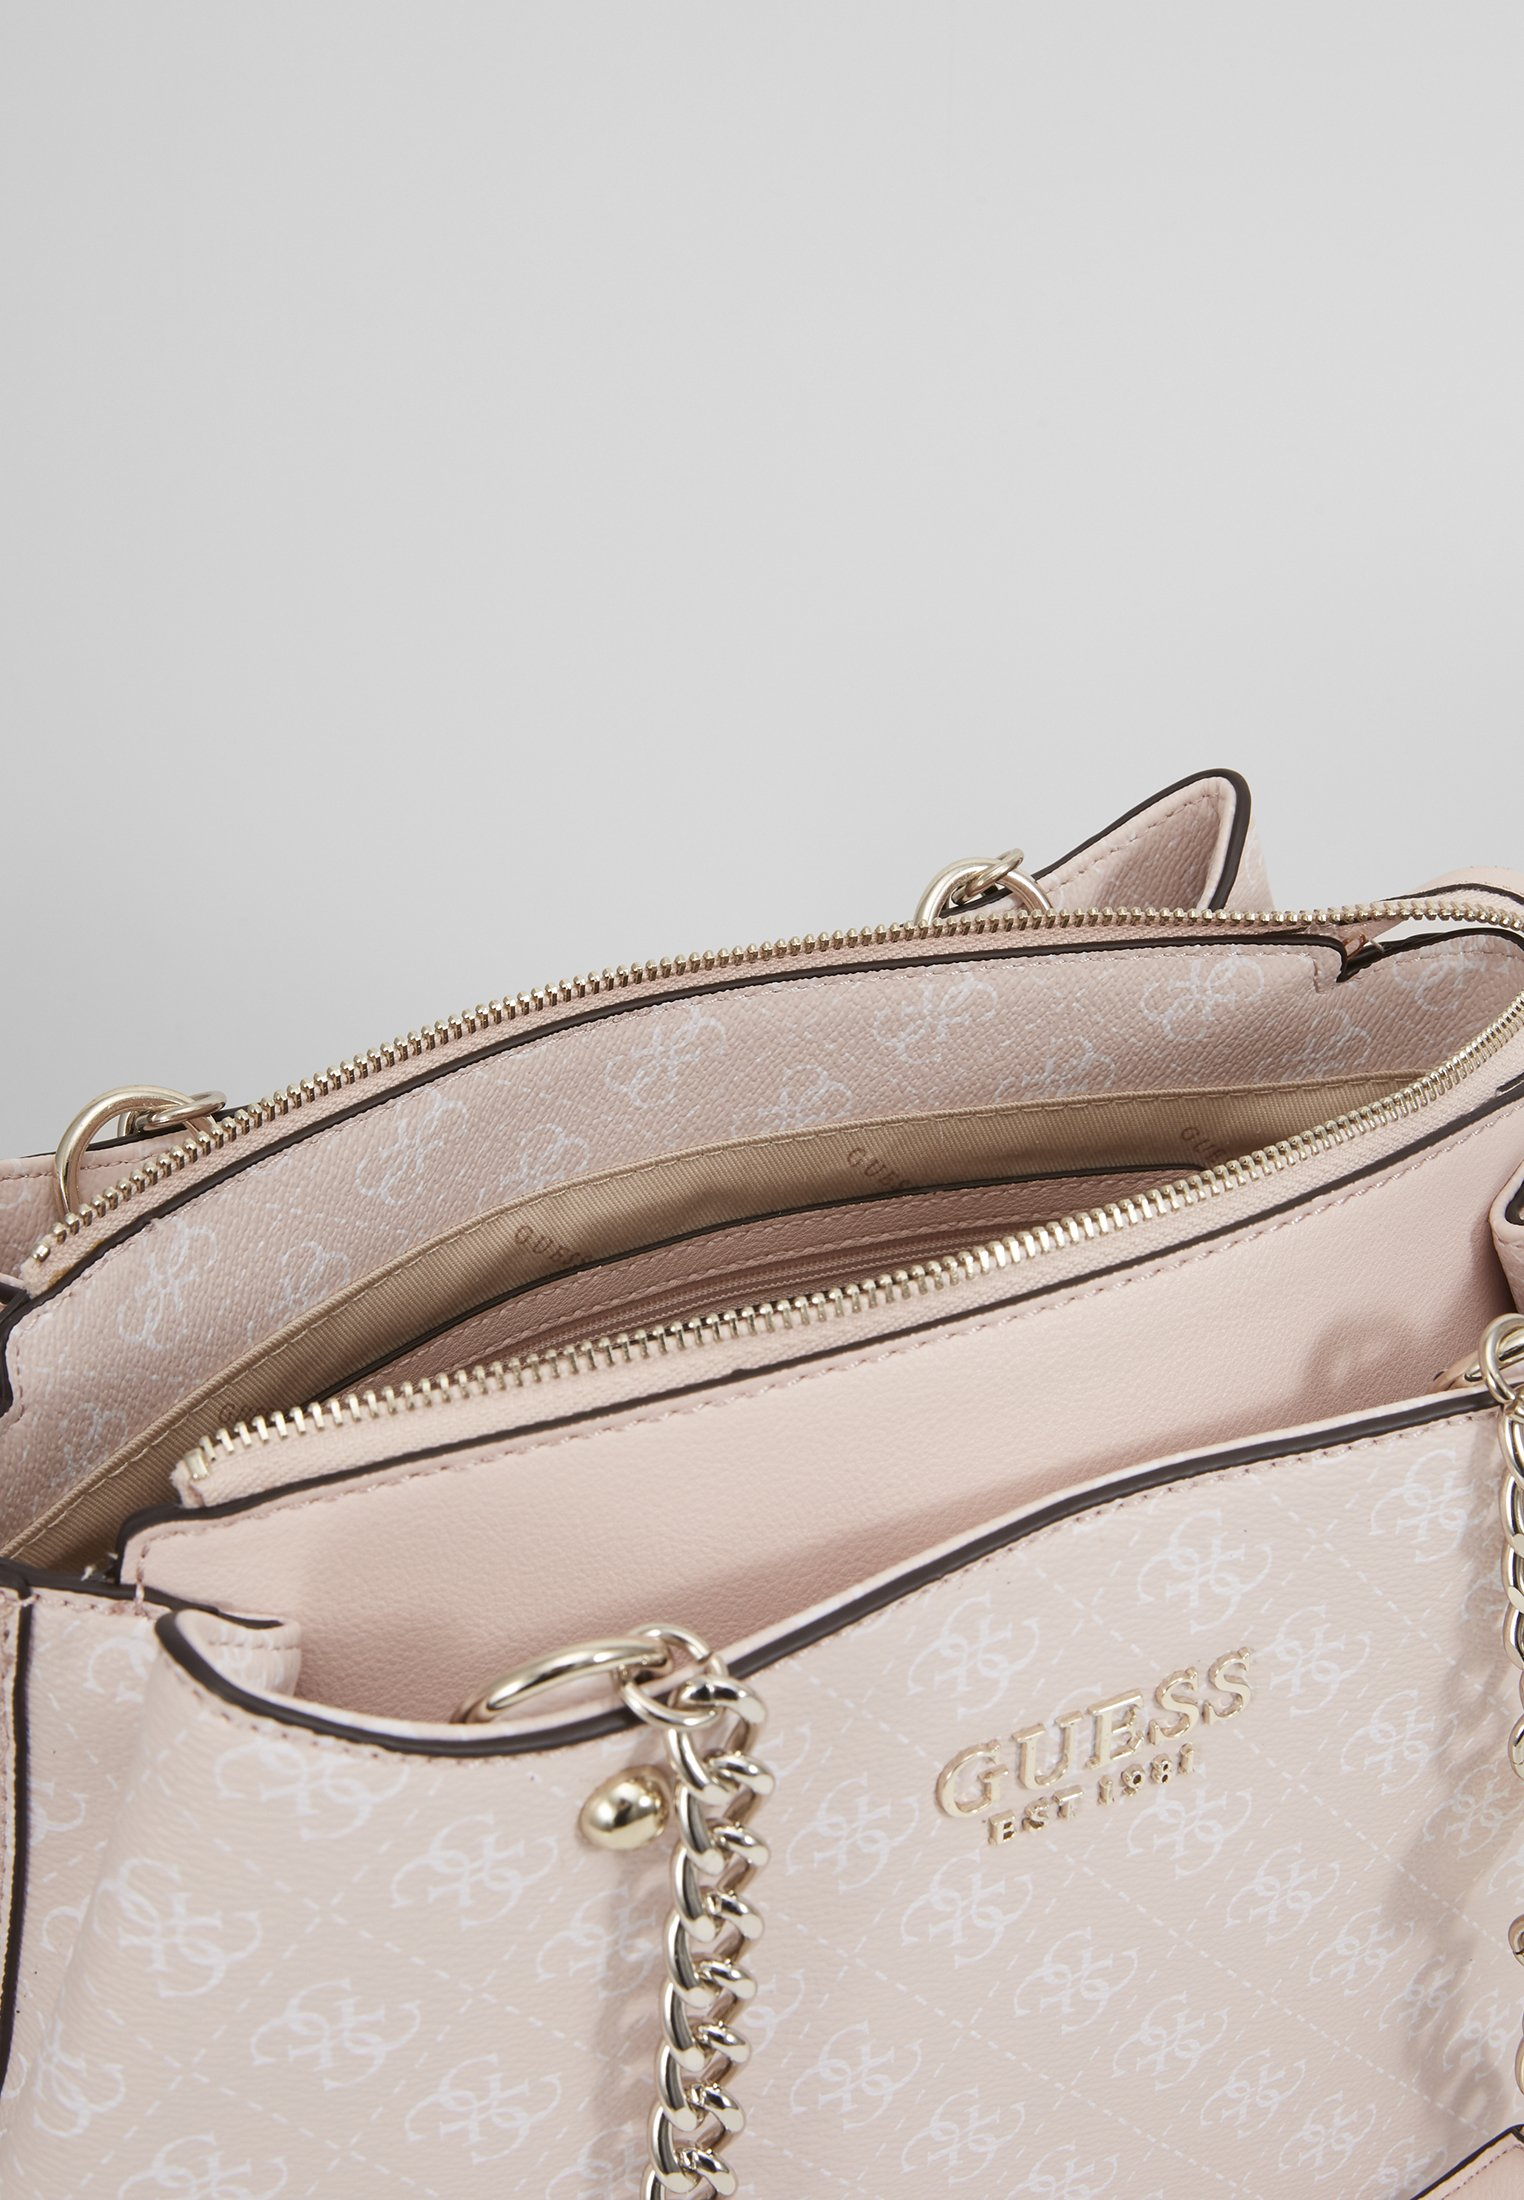 Guess LORENNA GIRLFRIEND SATCHEL Håndveske pinkrosa